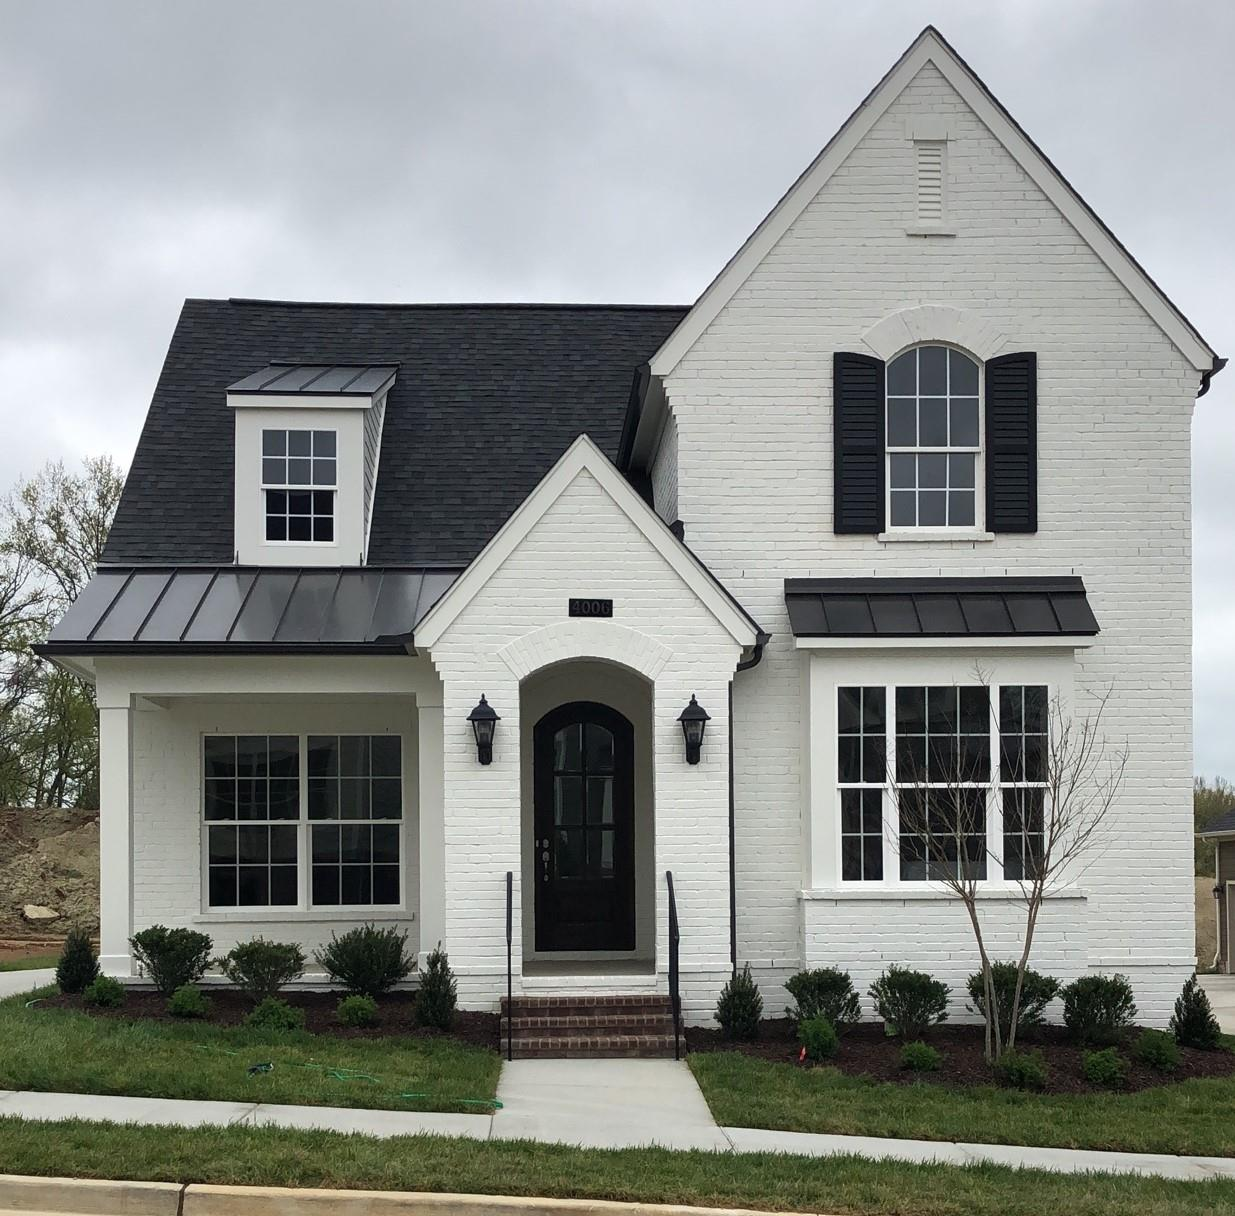 2420 Marco Street #172, Nolensville in Williamson County County, TN 37135 Home for Sale